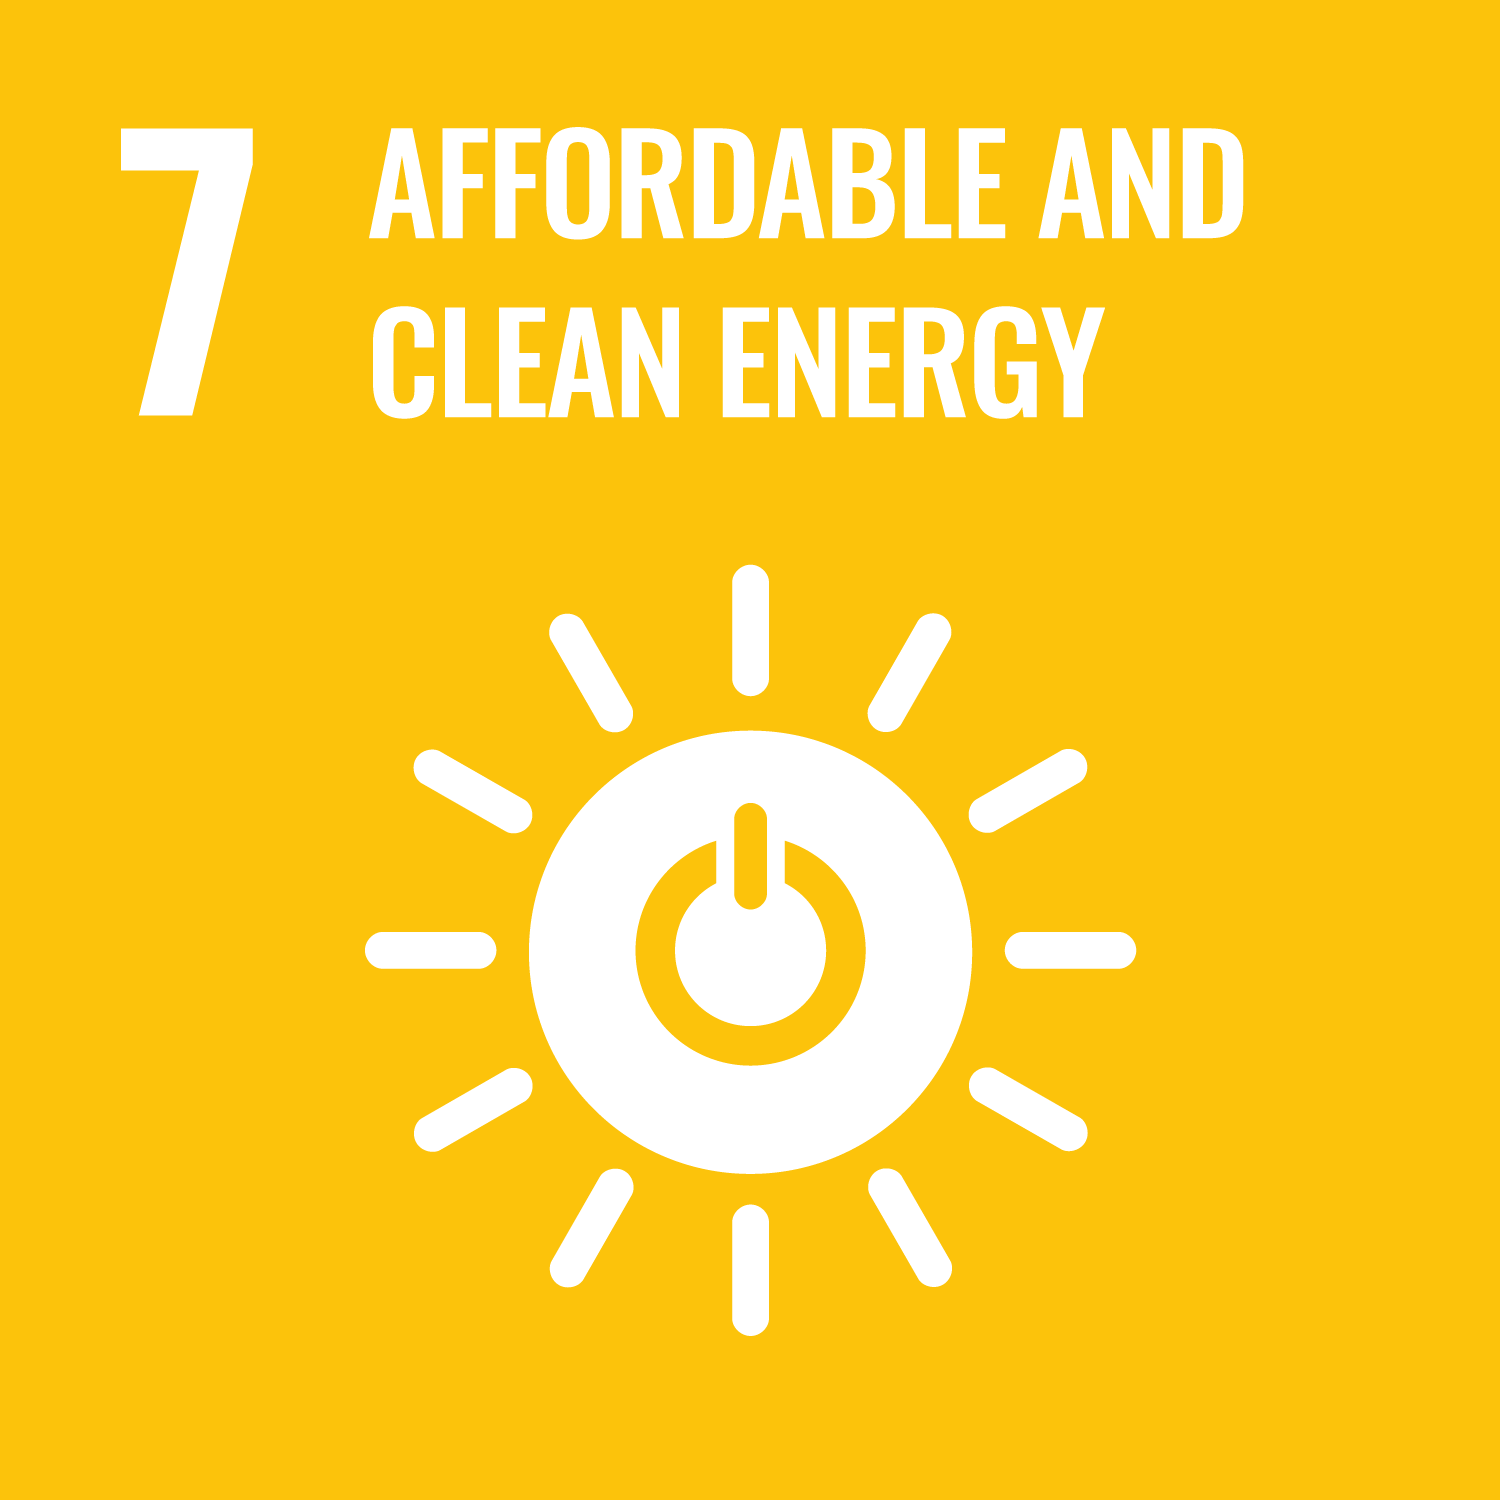 Facilitate the access to affordable, reliable, sustainable and modern energy for all